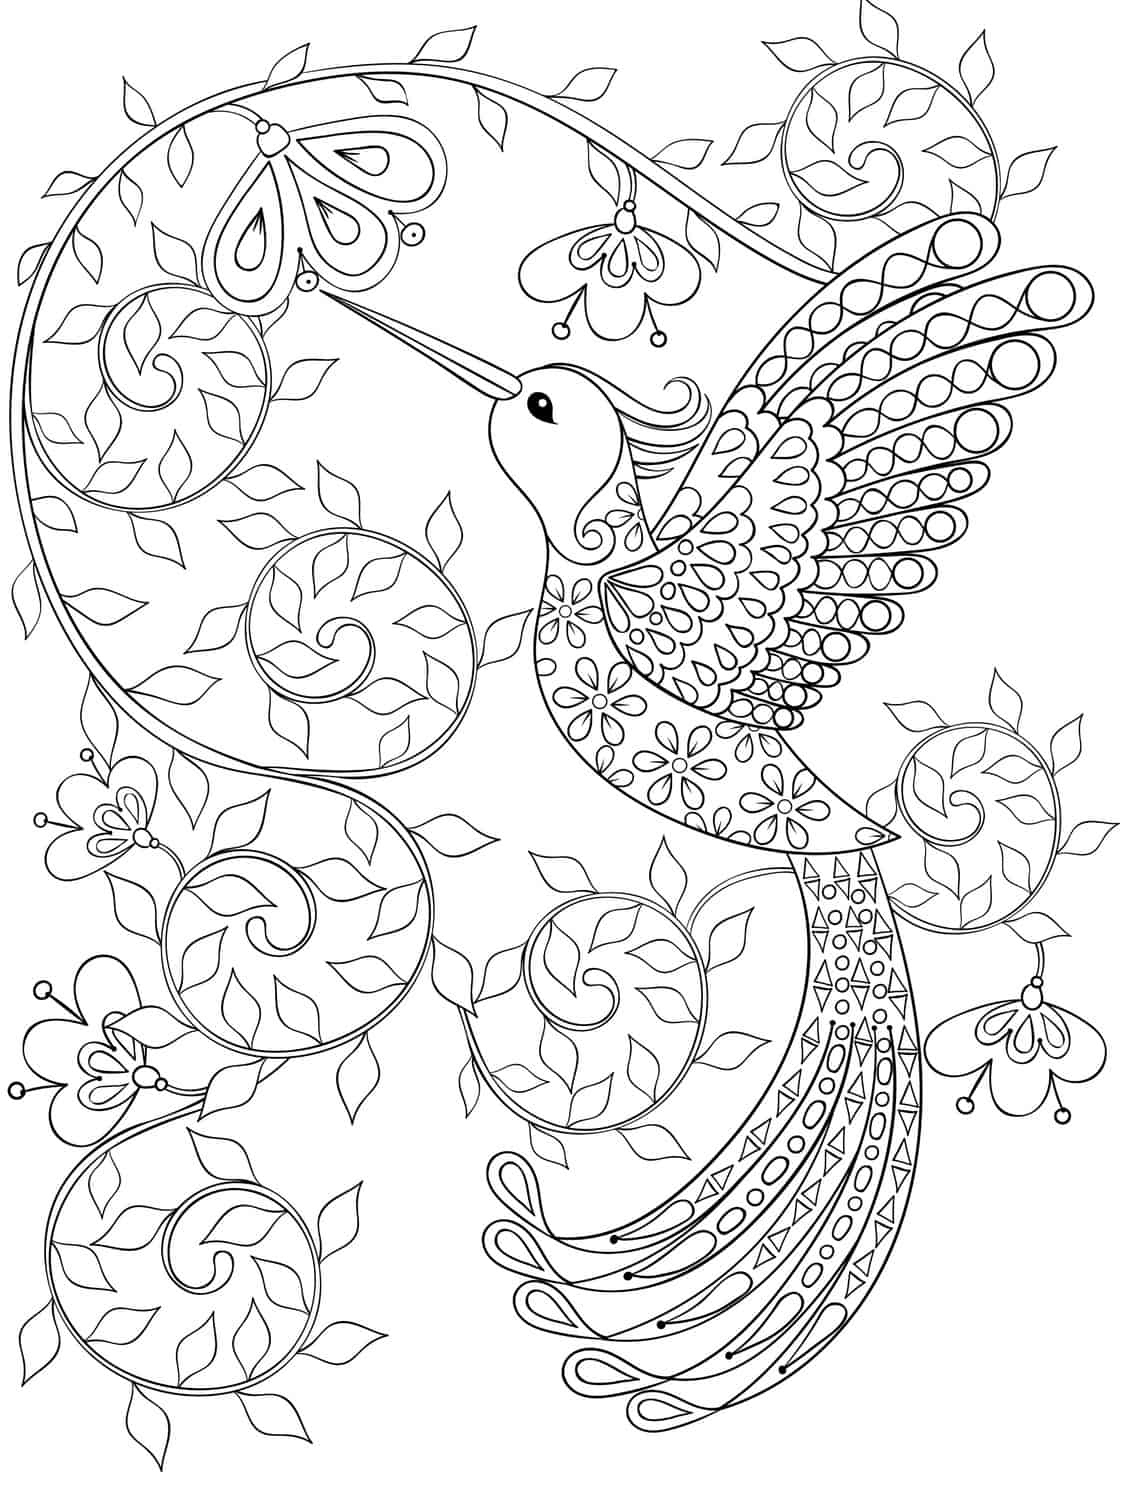 20 Gorgeous Free Printable Adult Coloring Pages Page 11 Coloring Pages For Seniors